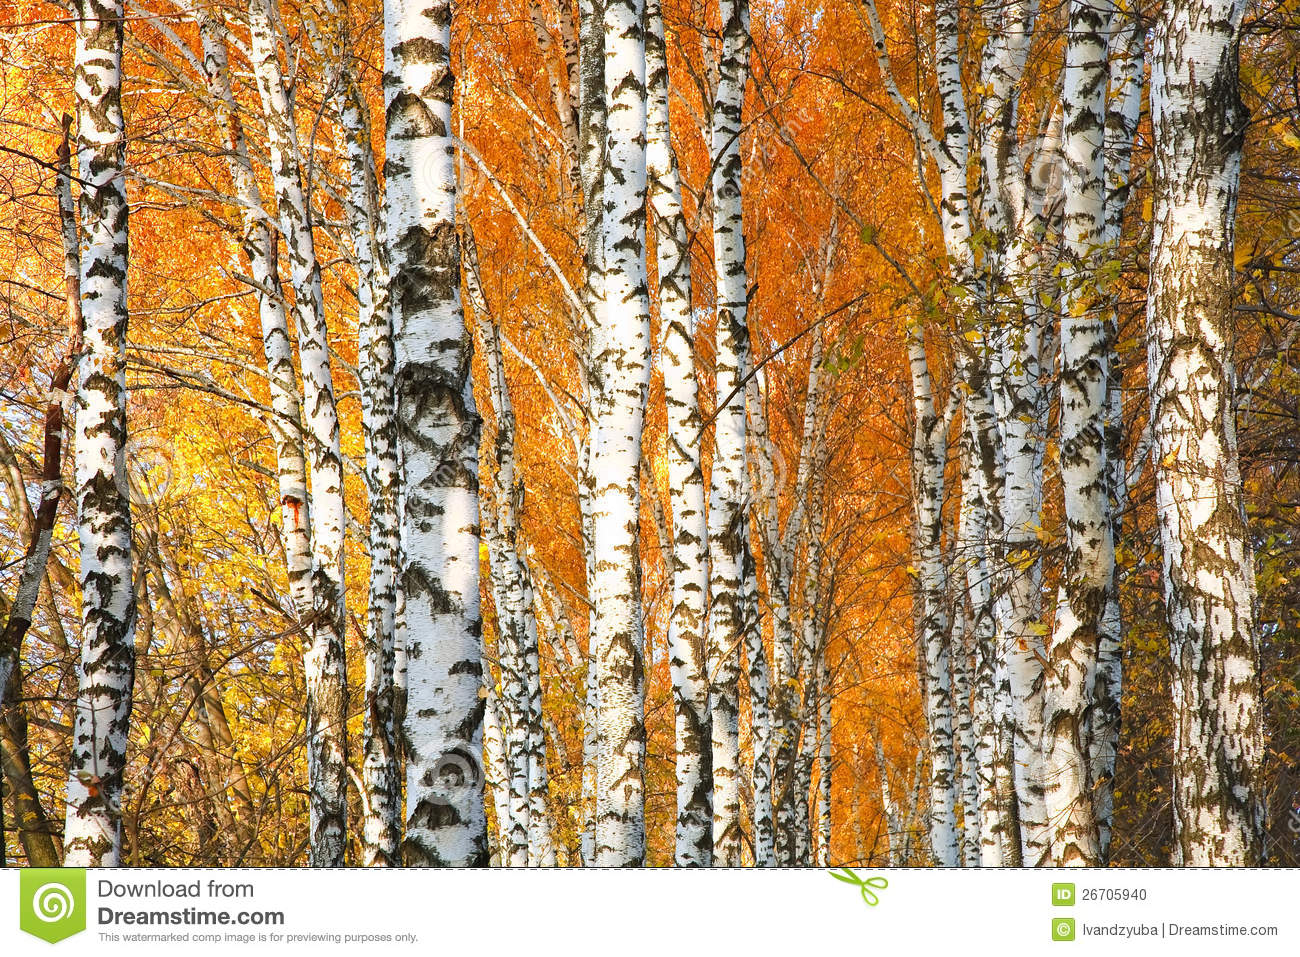 Fall Woods Wallpaper Autumn Yellowed Birch Forest Stock Photo Image 26705940